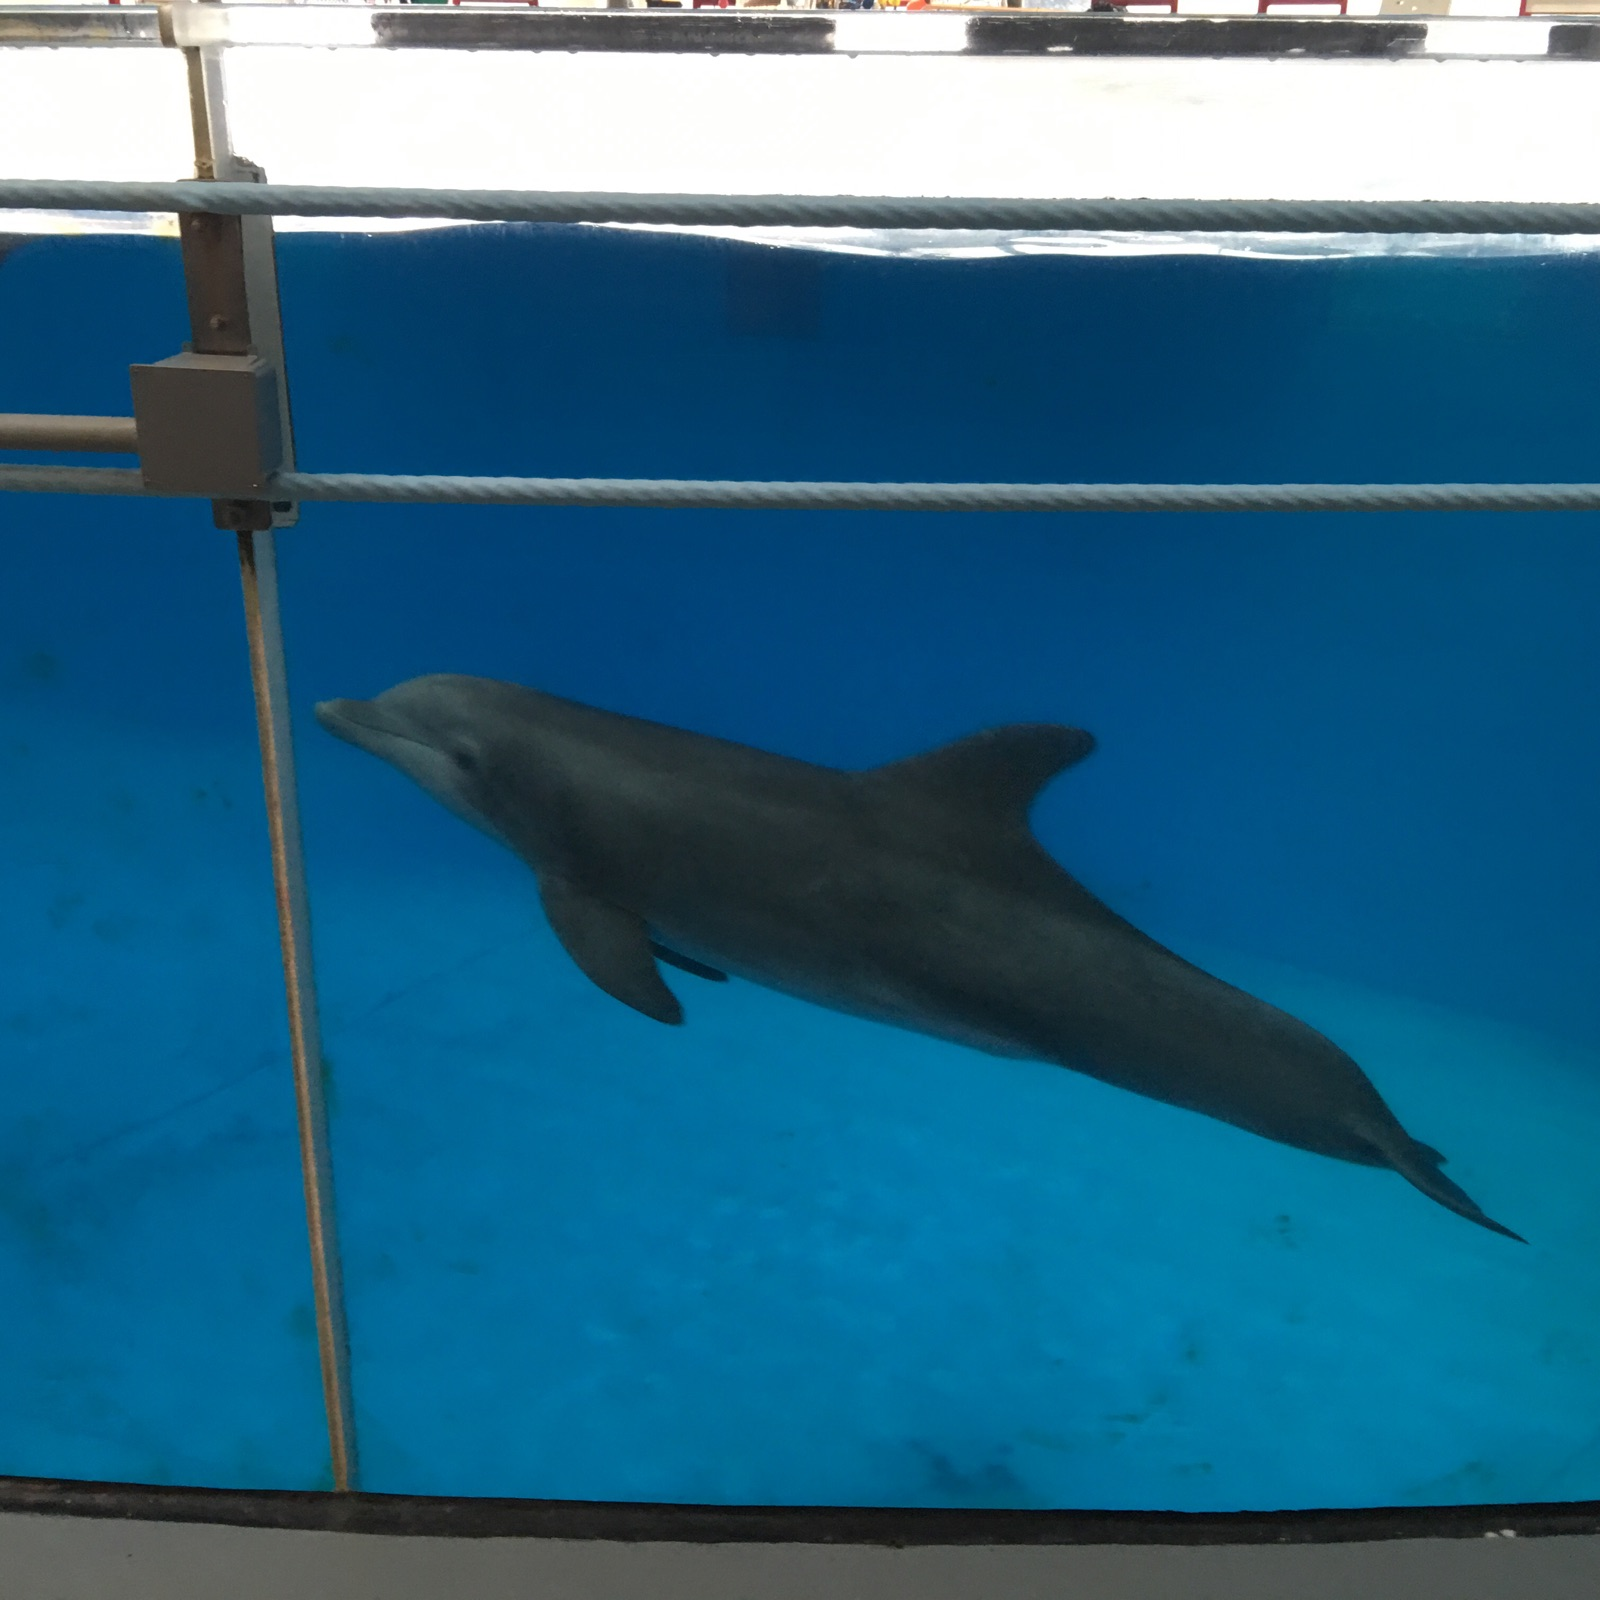 Dolphin Discovery at National Aquarium